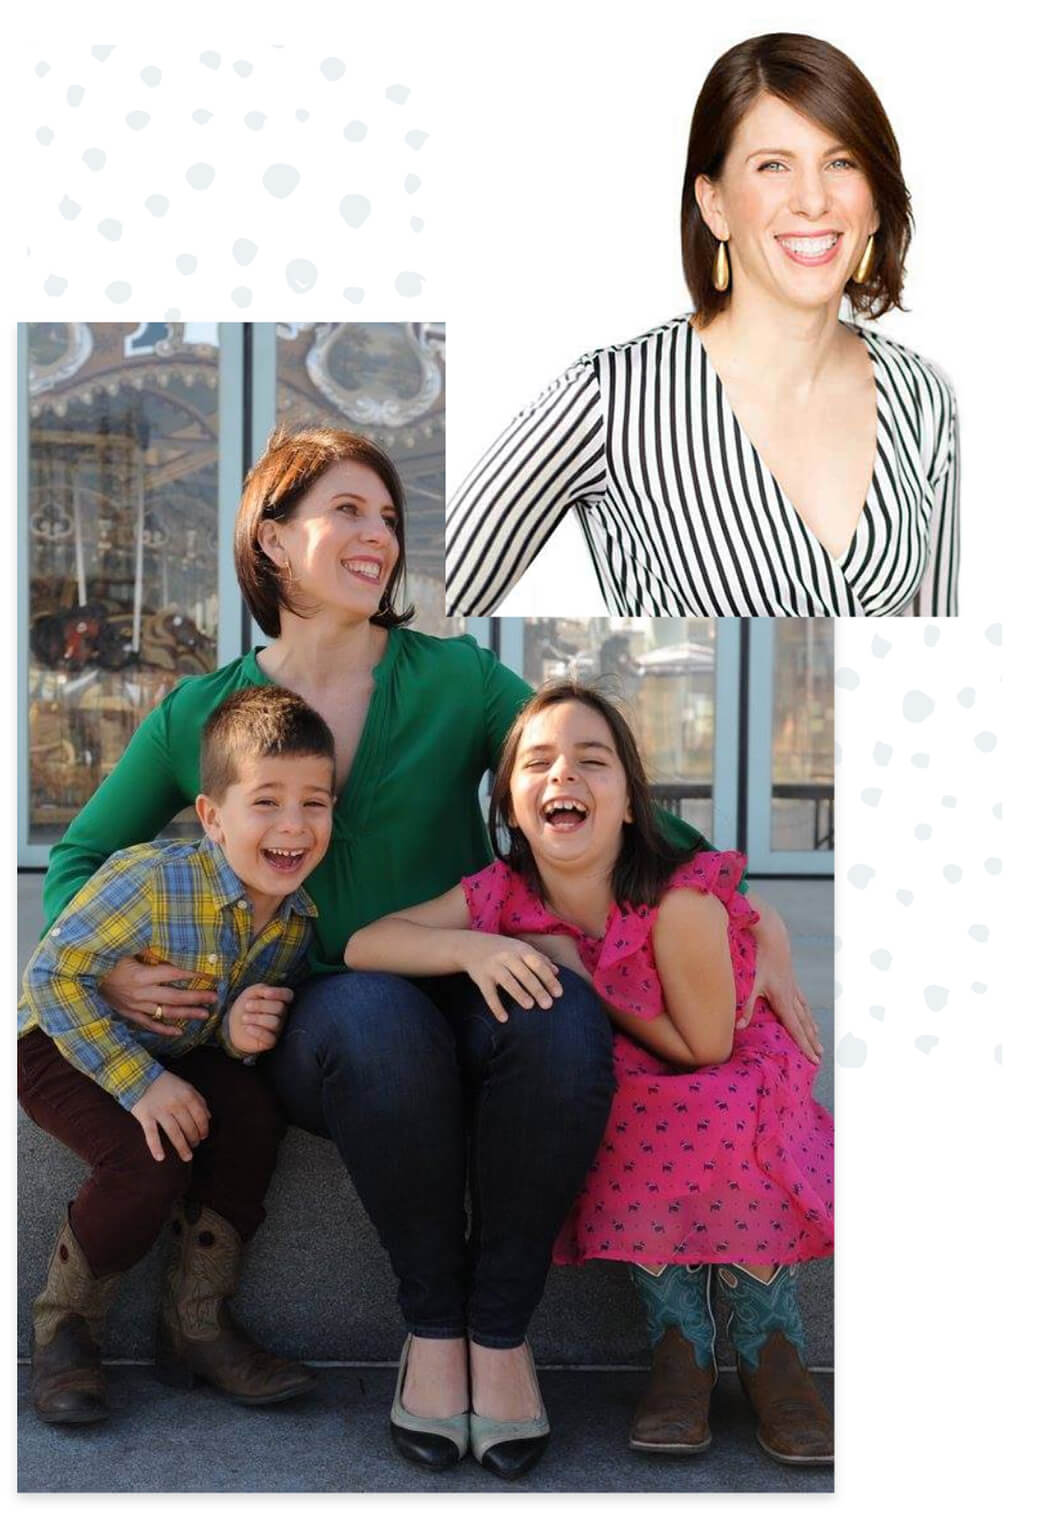 Photo of Emma Johnson laughing with her son and daughter